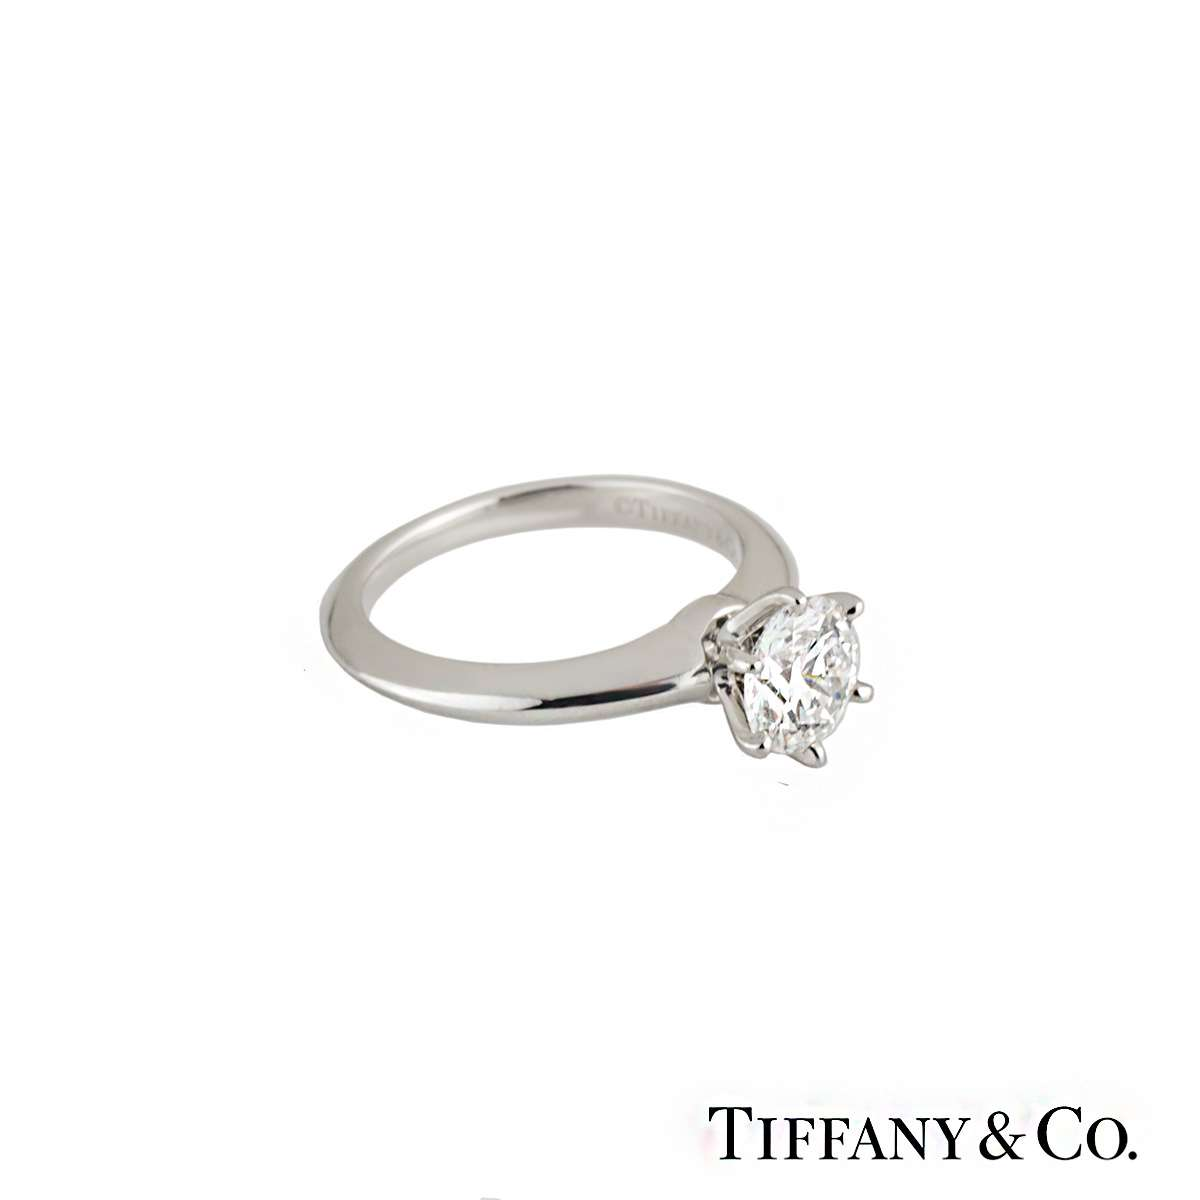 Tiffany & Co. Platinum Diamond Setting Ring 1.23ct F/VS2 XXX